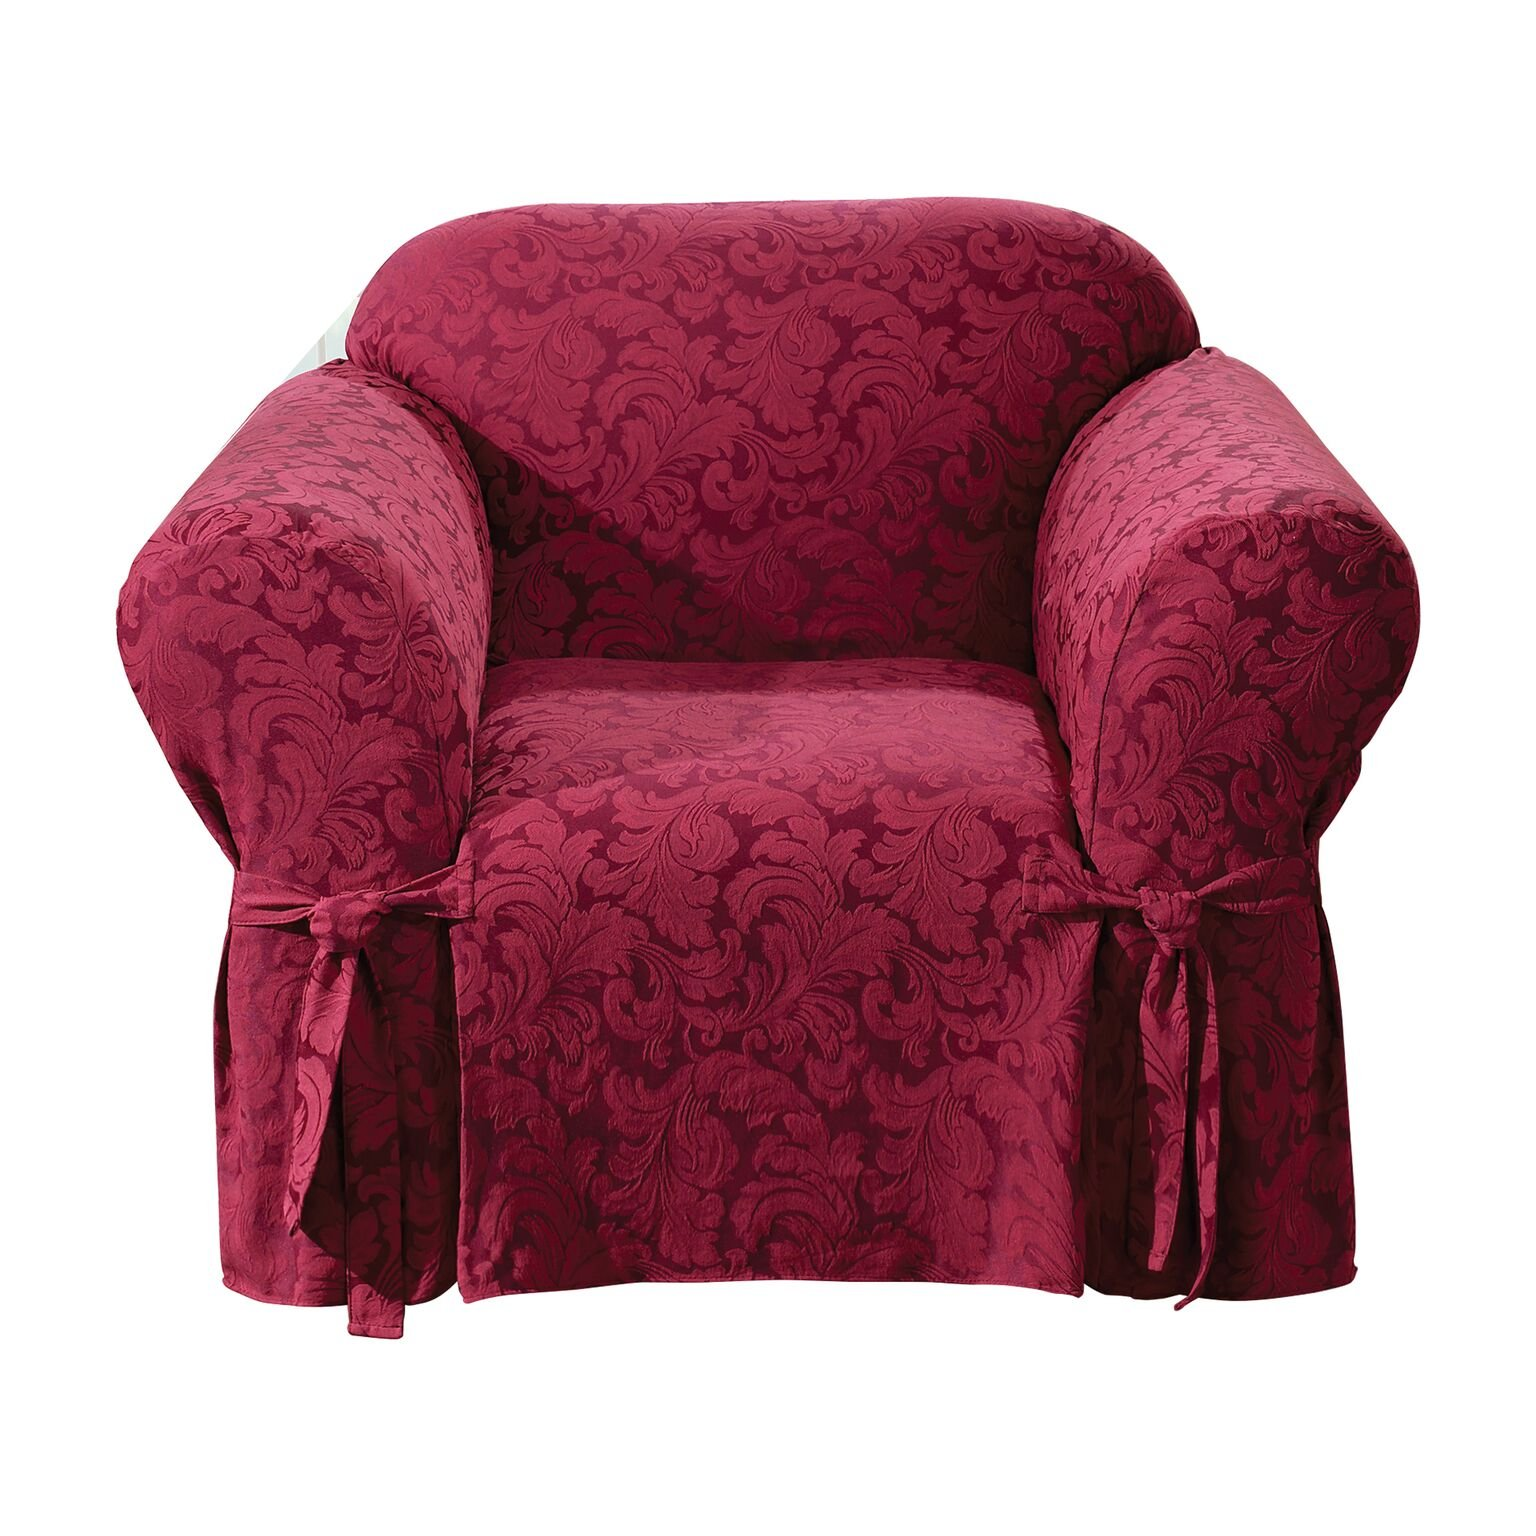 Sure Fit SF24988 Scroll Chair 1 Piece Slipcover, Burgundy